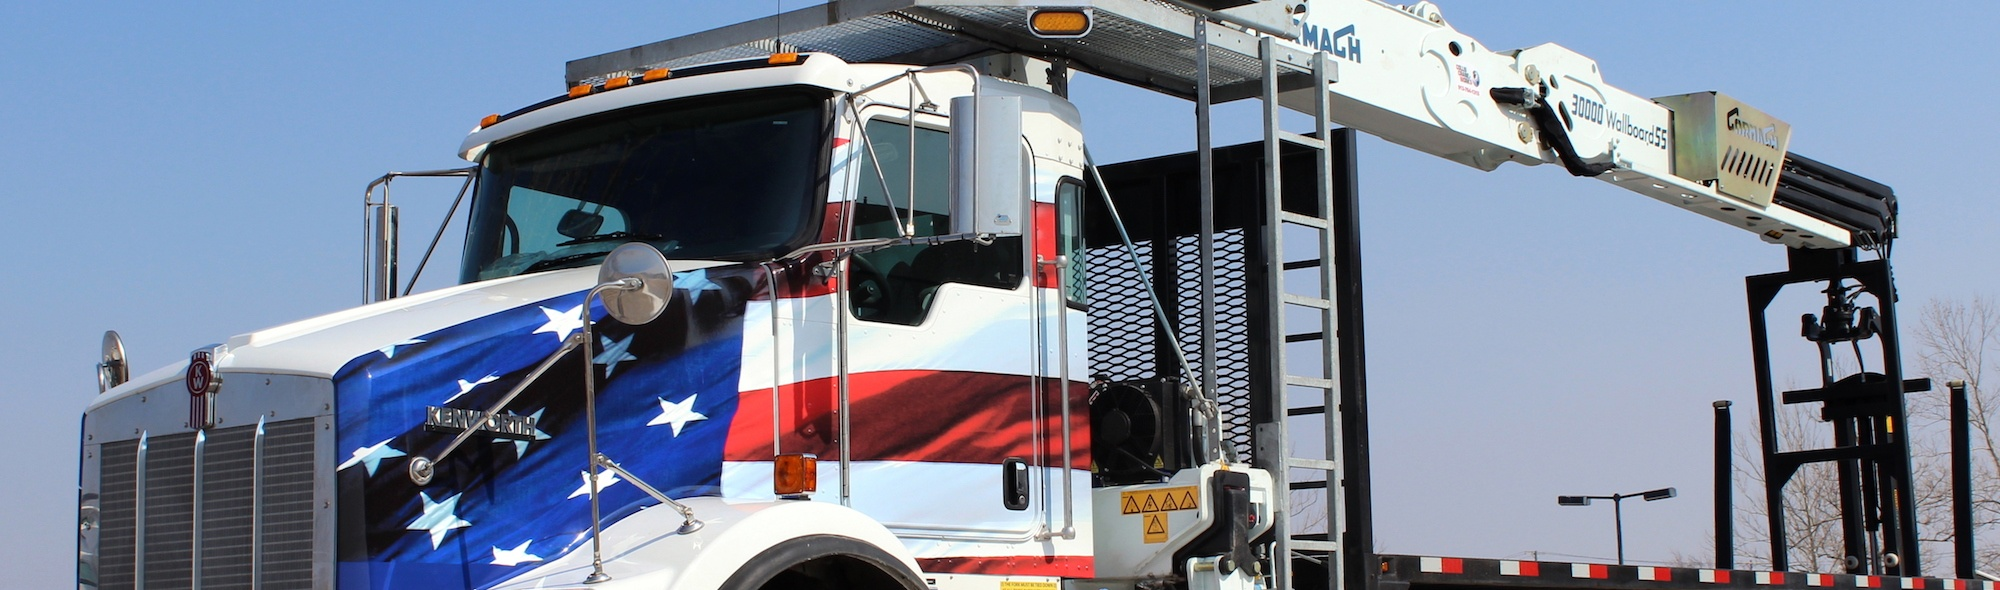 Cormach drywall boom truck with American flag wrap